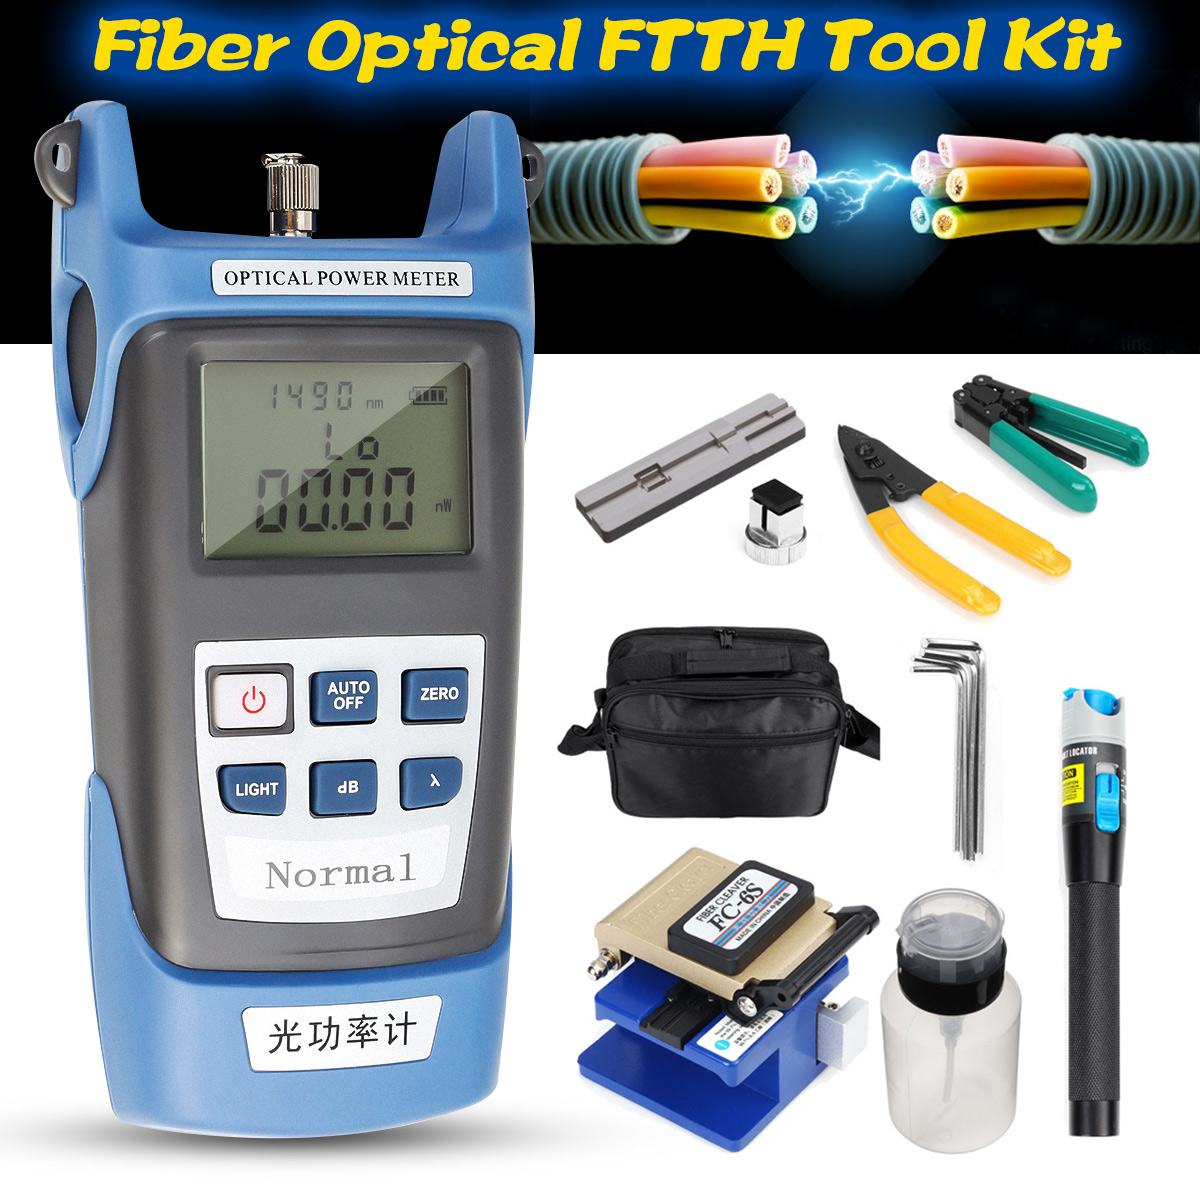 13Pcs Fiber Optical FTTH Power Meter Cleaver Red Light Test Pen Cable Cutter Piper Kit+Stripping Pliers Visual Fault Locator13Pcs Fiber Optical FTTH Power Meter Cleaver Red Light Test Pen Cable Cutter Piper Kit+Stripping Pliers Visual Fault Locator